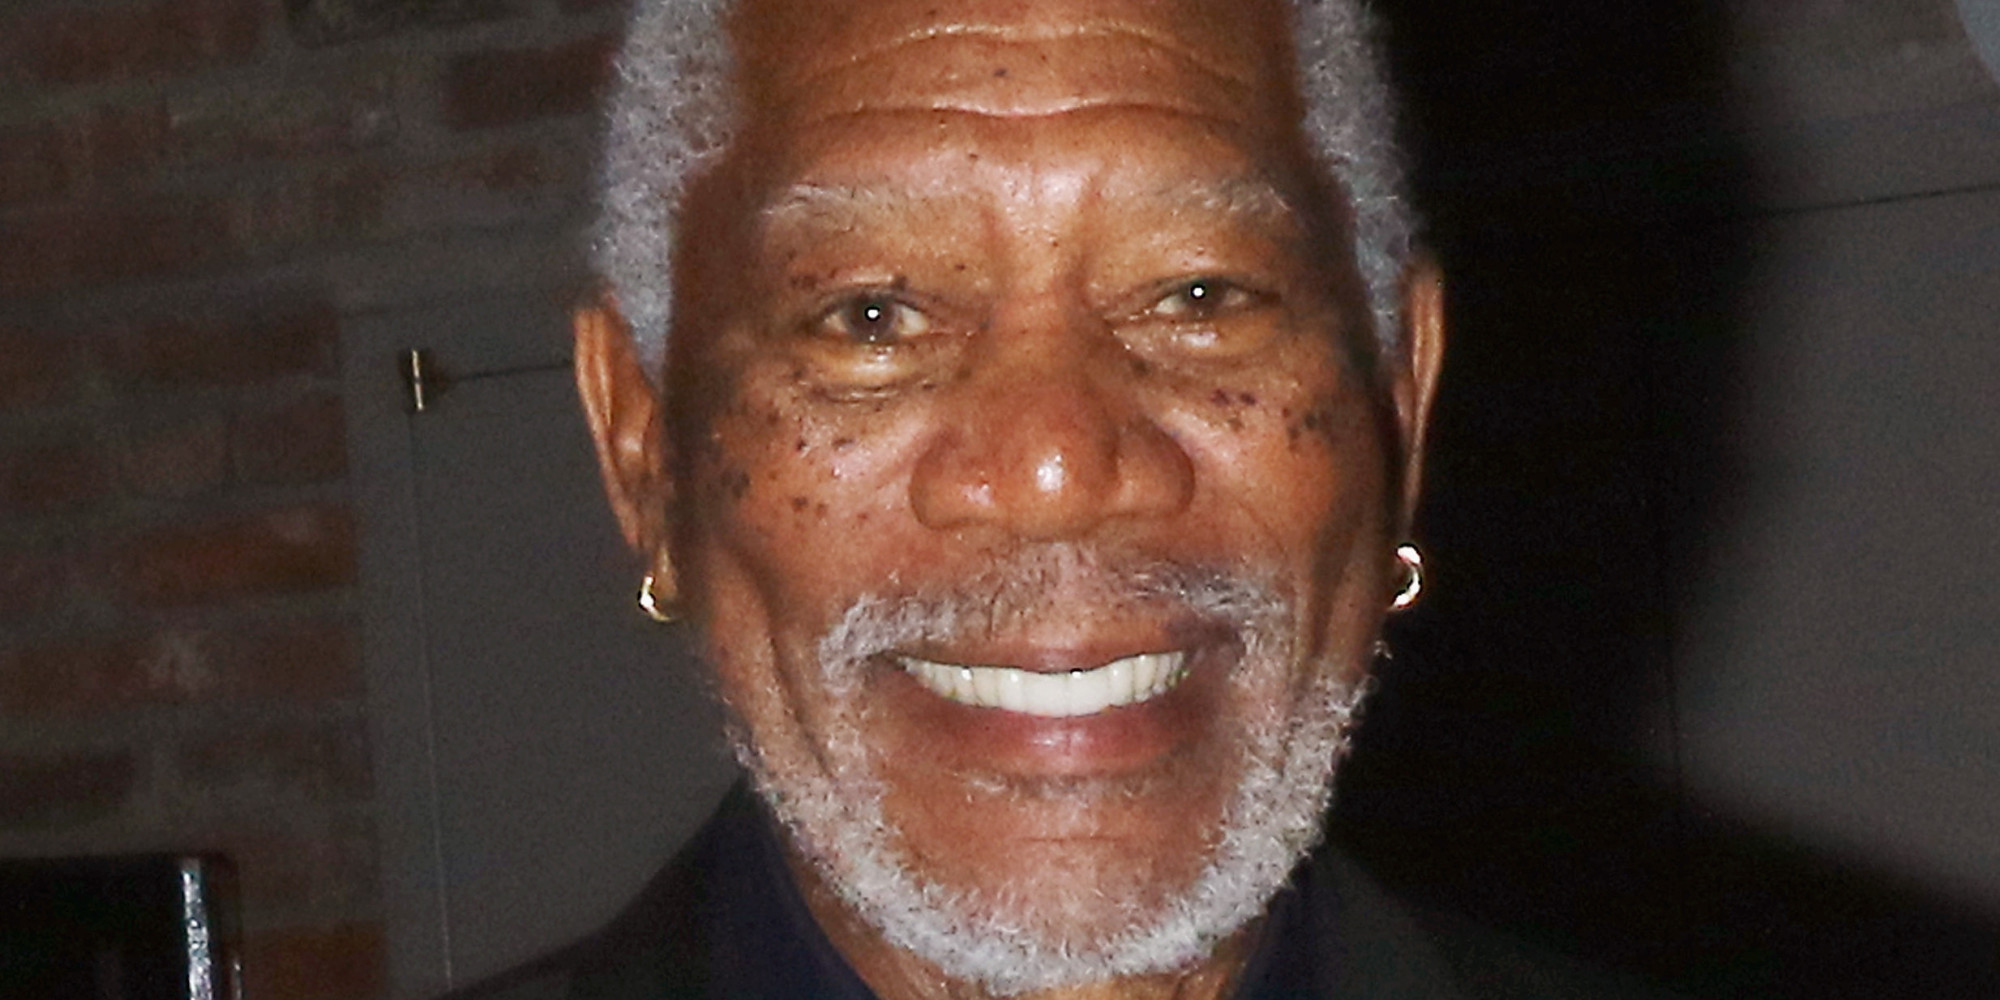 Morgan Freeman Set To Host Story Of God Series For National